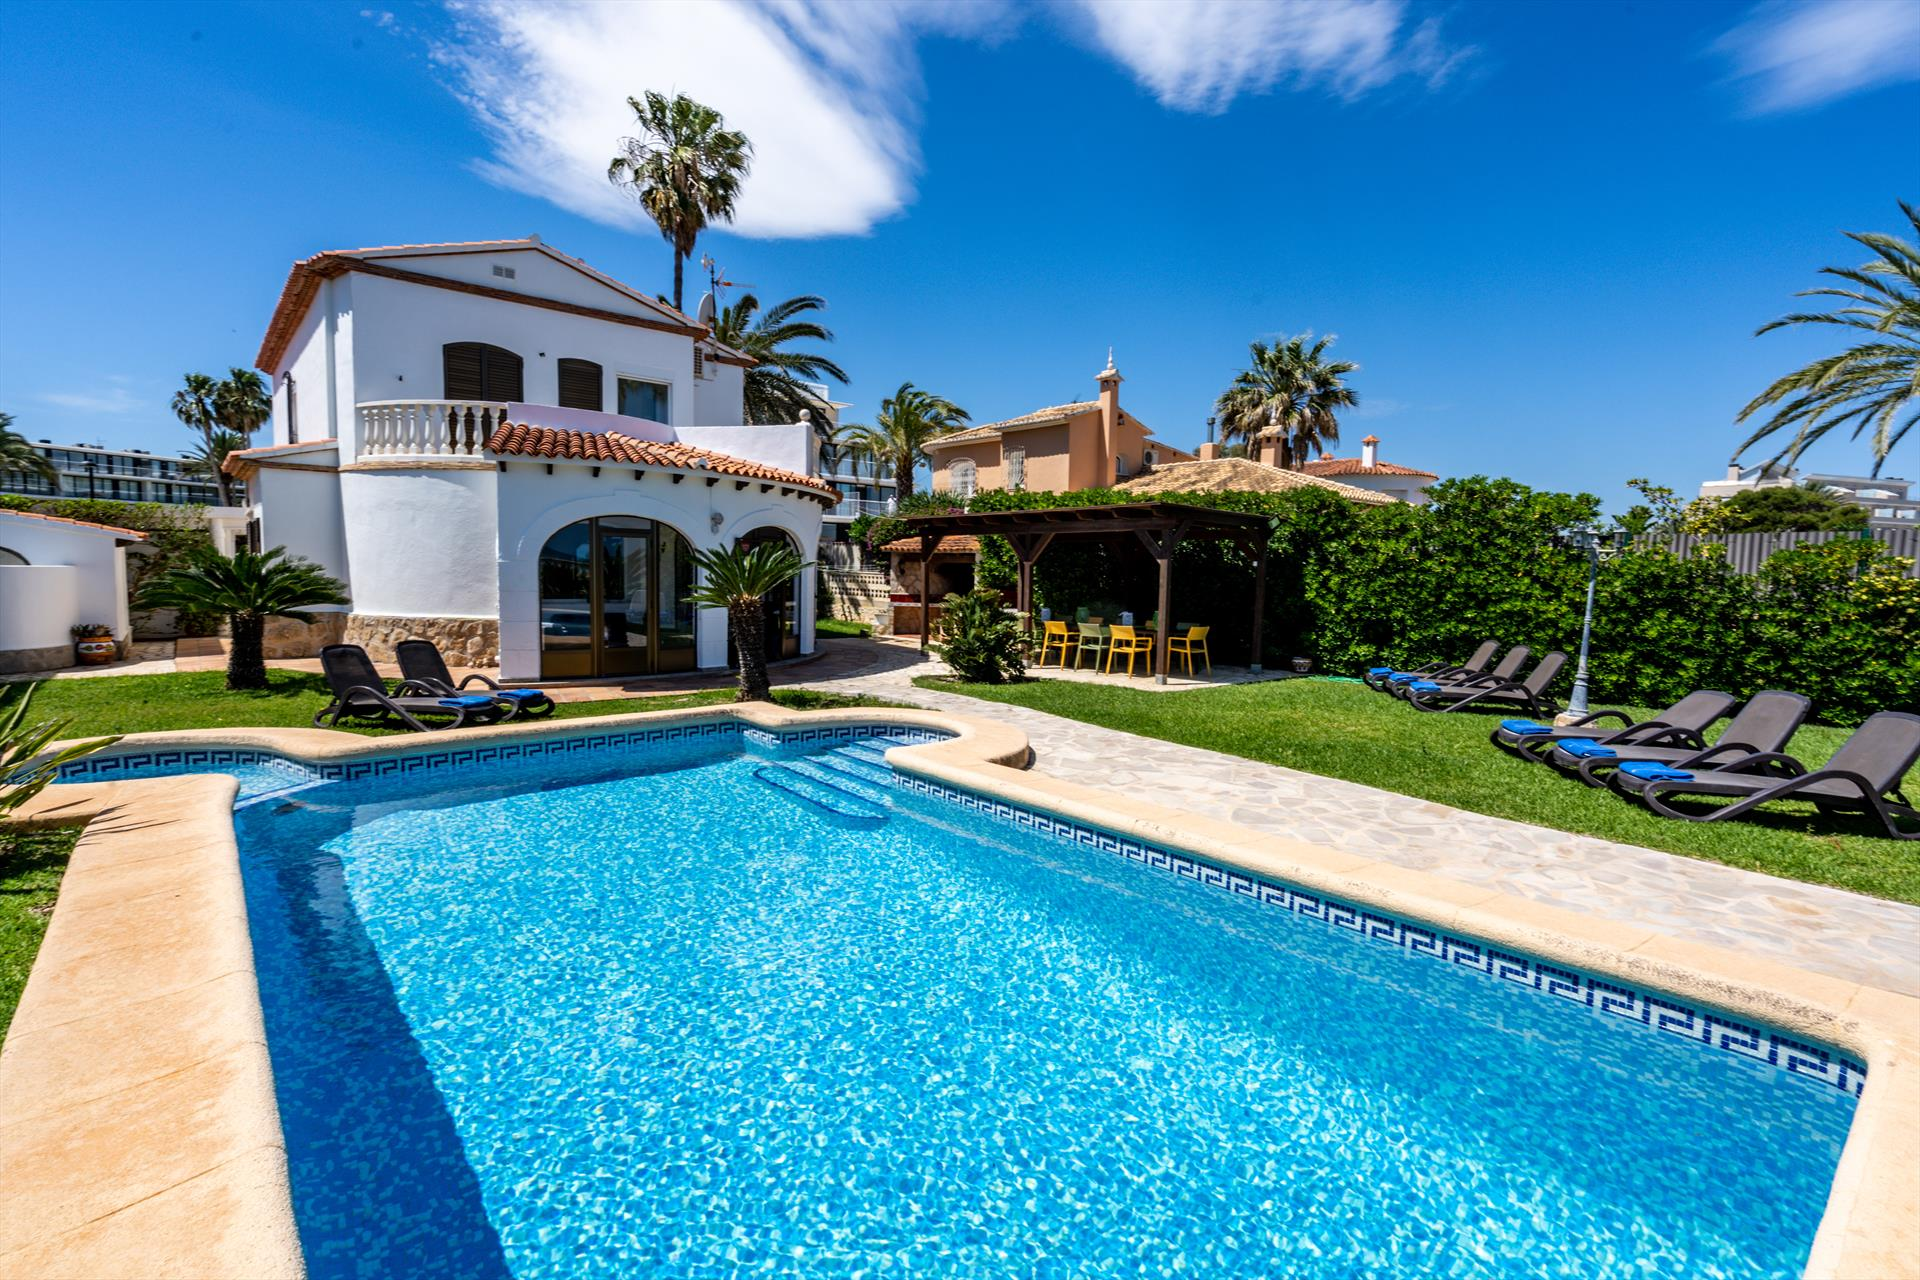 Villa Neptun, Villa  with private pool in Denia, on the Costa Blanca, Spain for 12 persons...